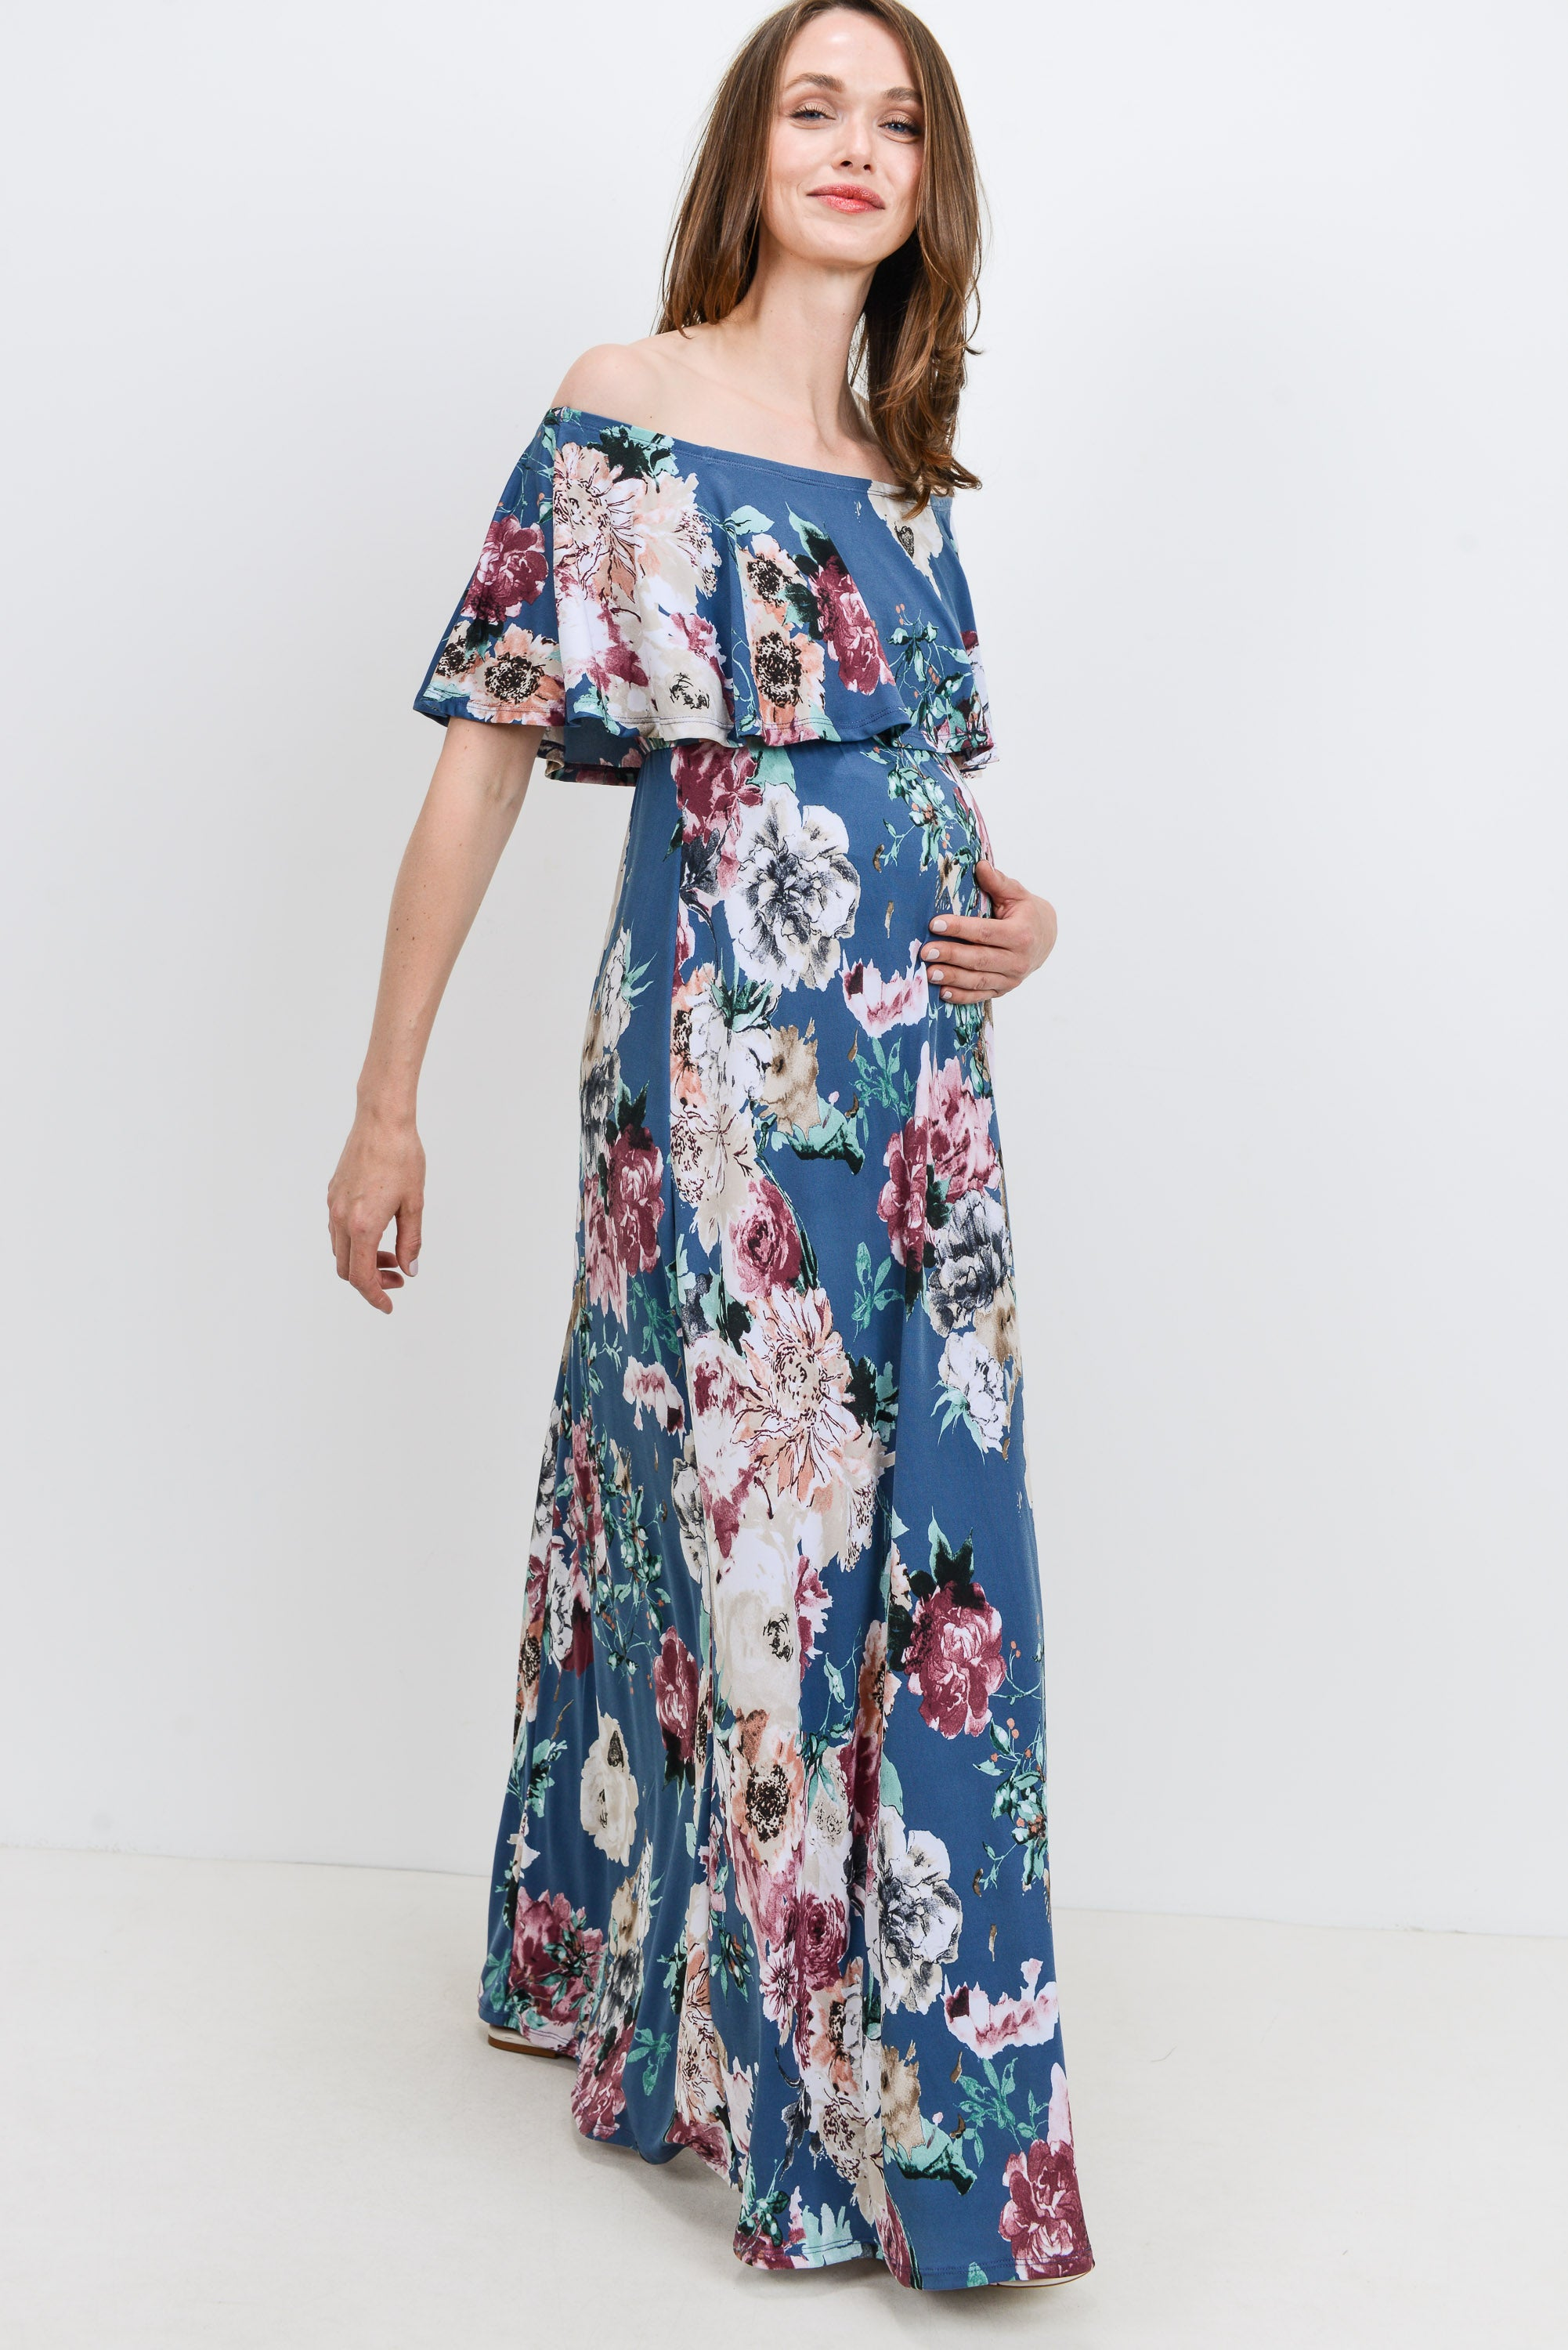 GREY Floral Off Shoulder Maternity Maxi Dress